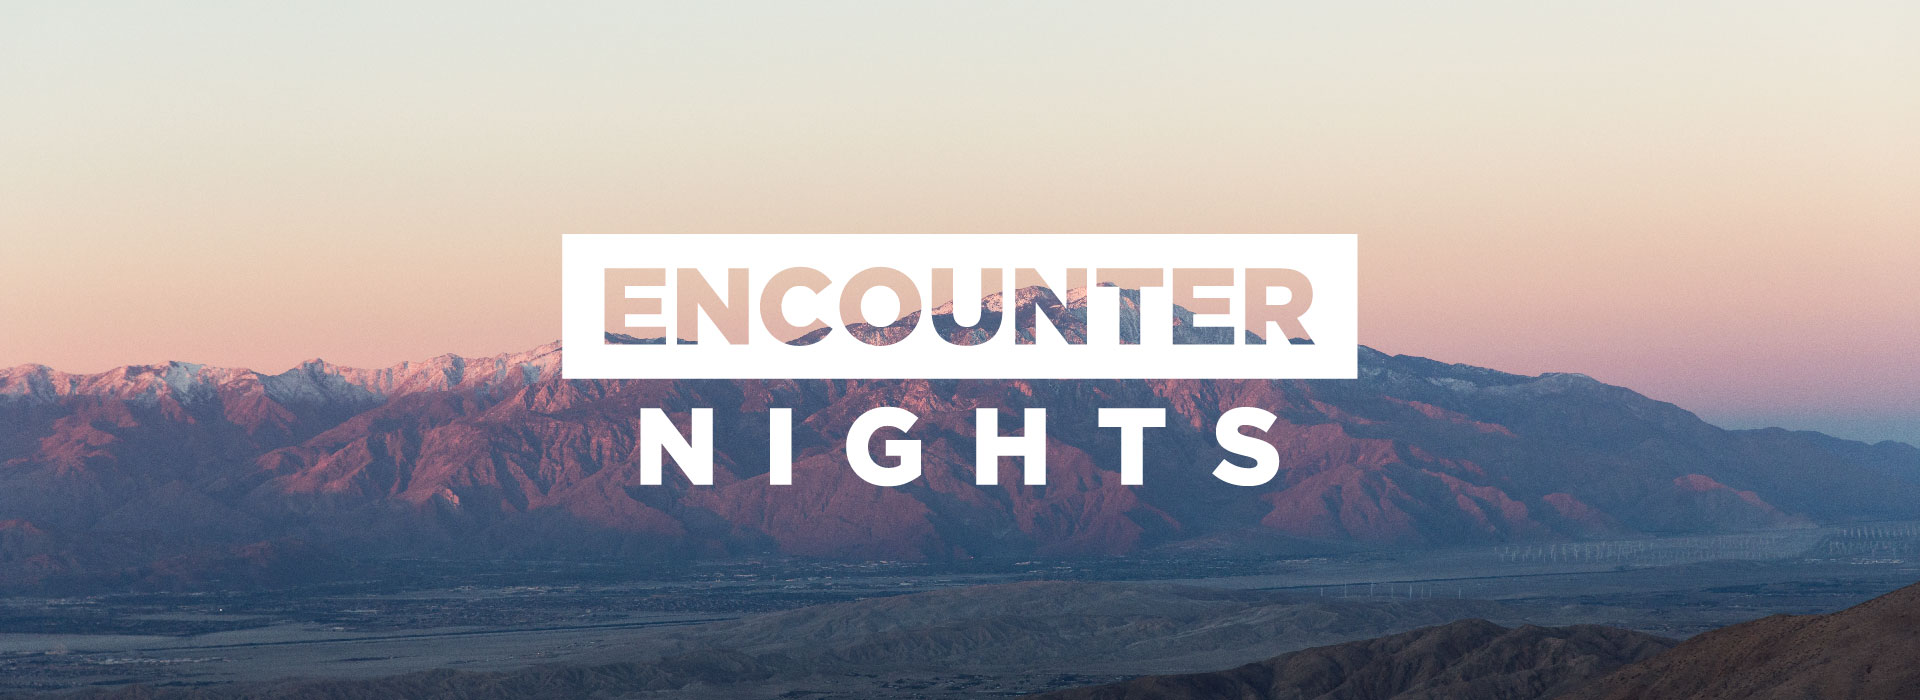 encounter nights-01